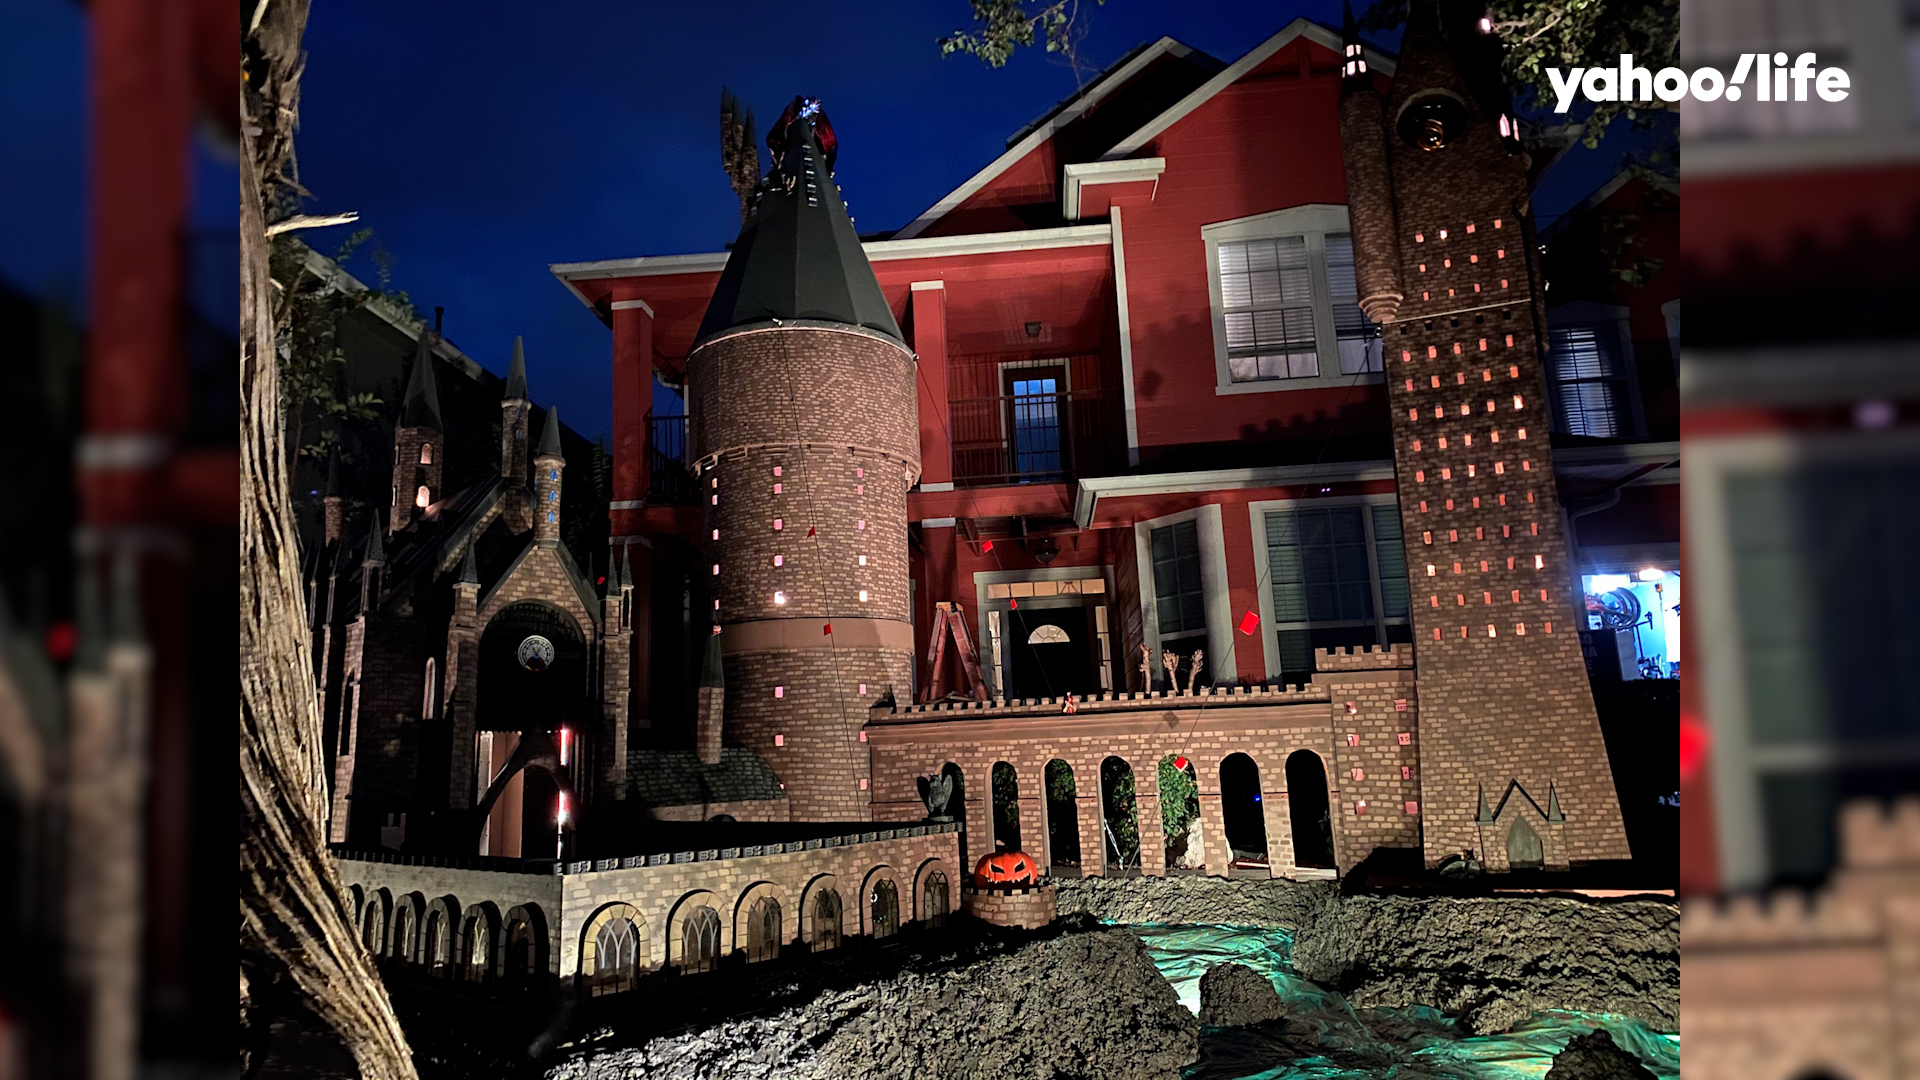 Family builds 'Hogwarts Castle' in front yard to lift neighborhood's spirits during Halloween